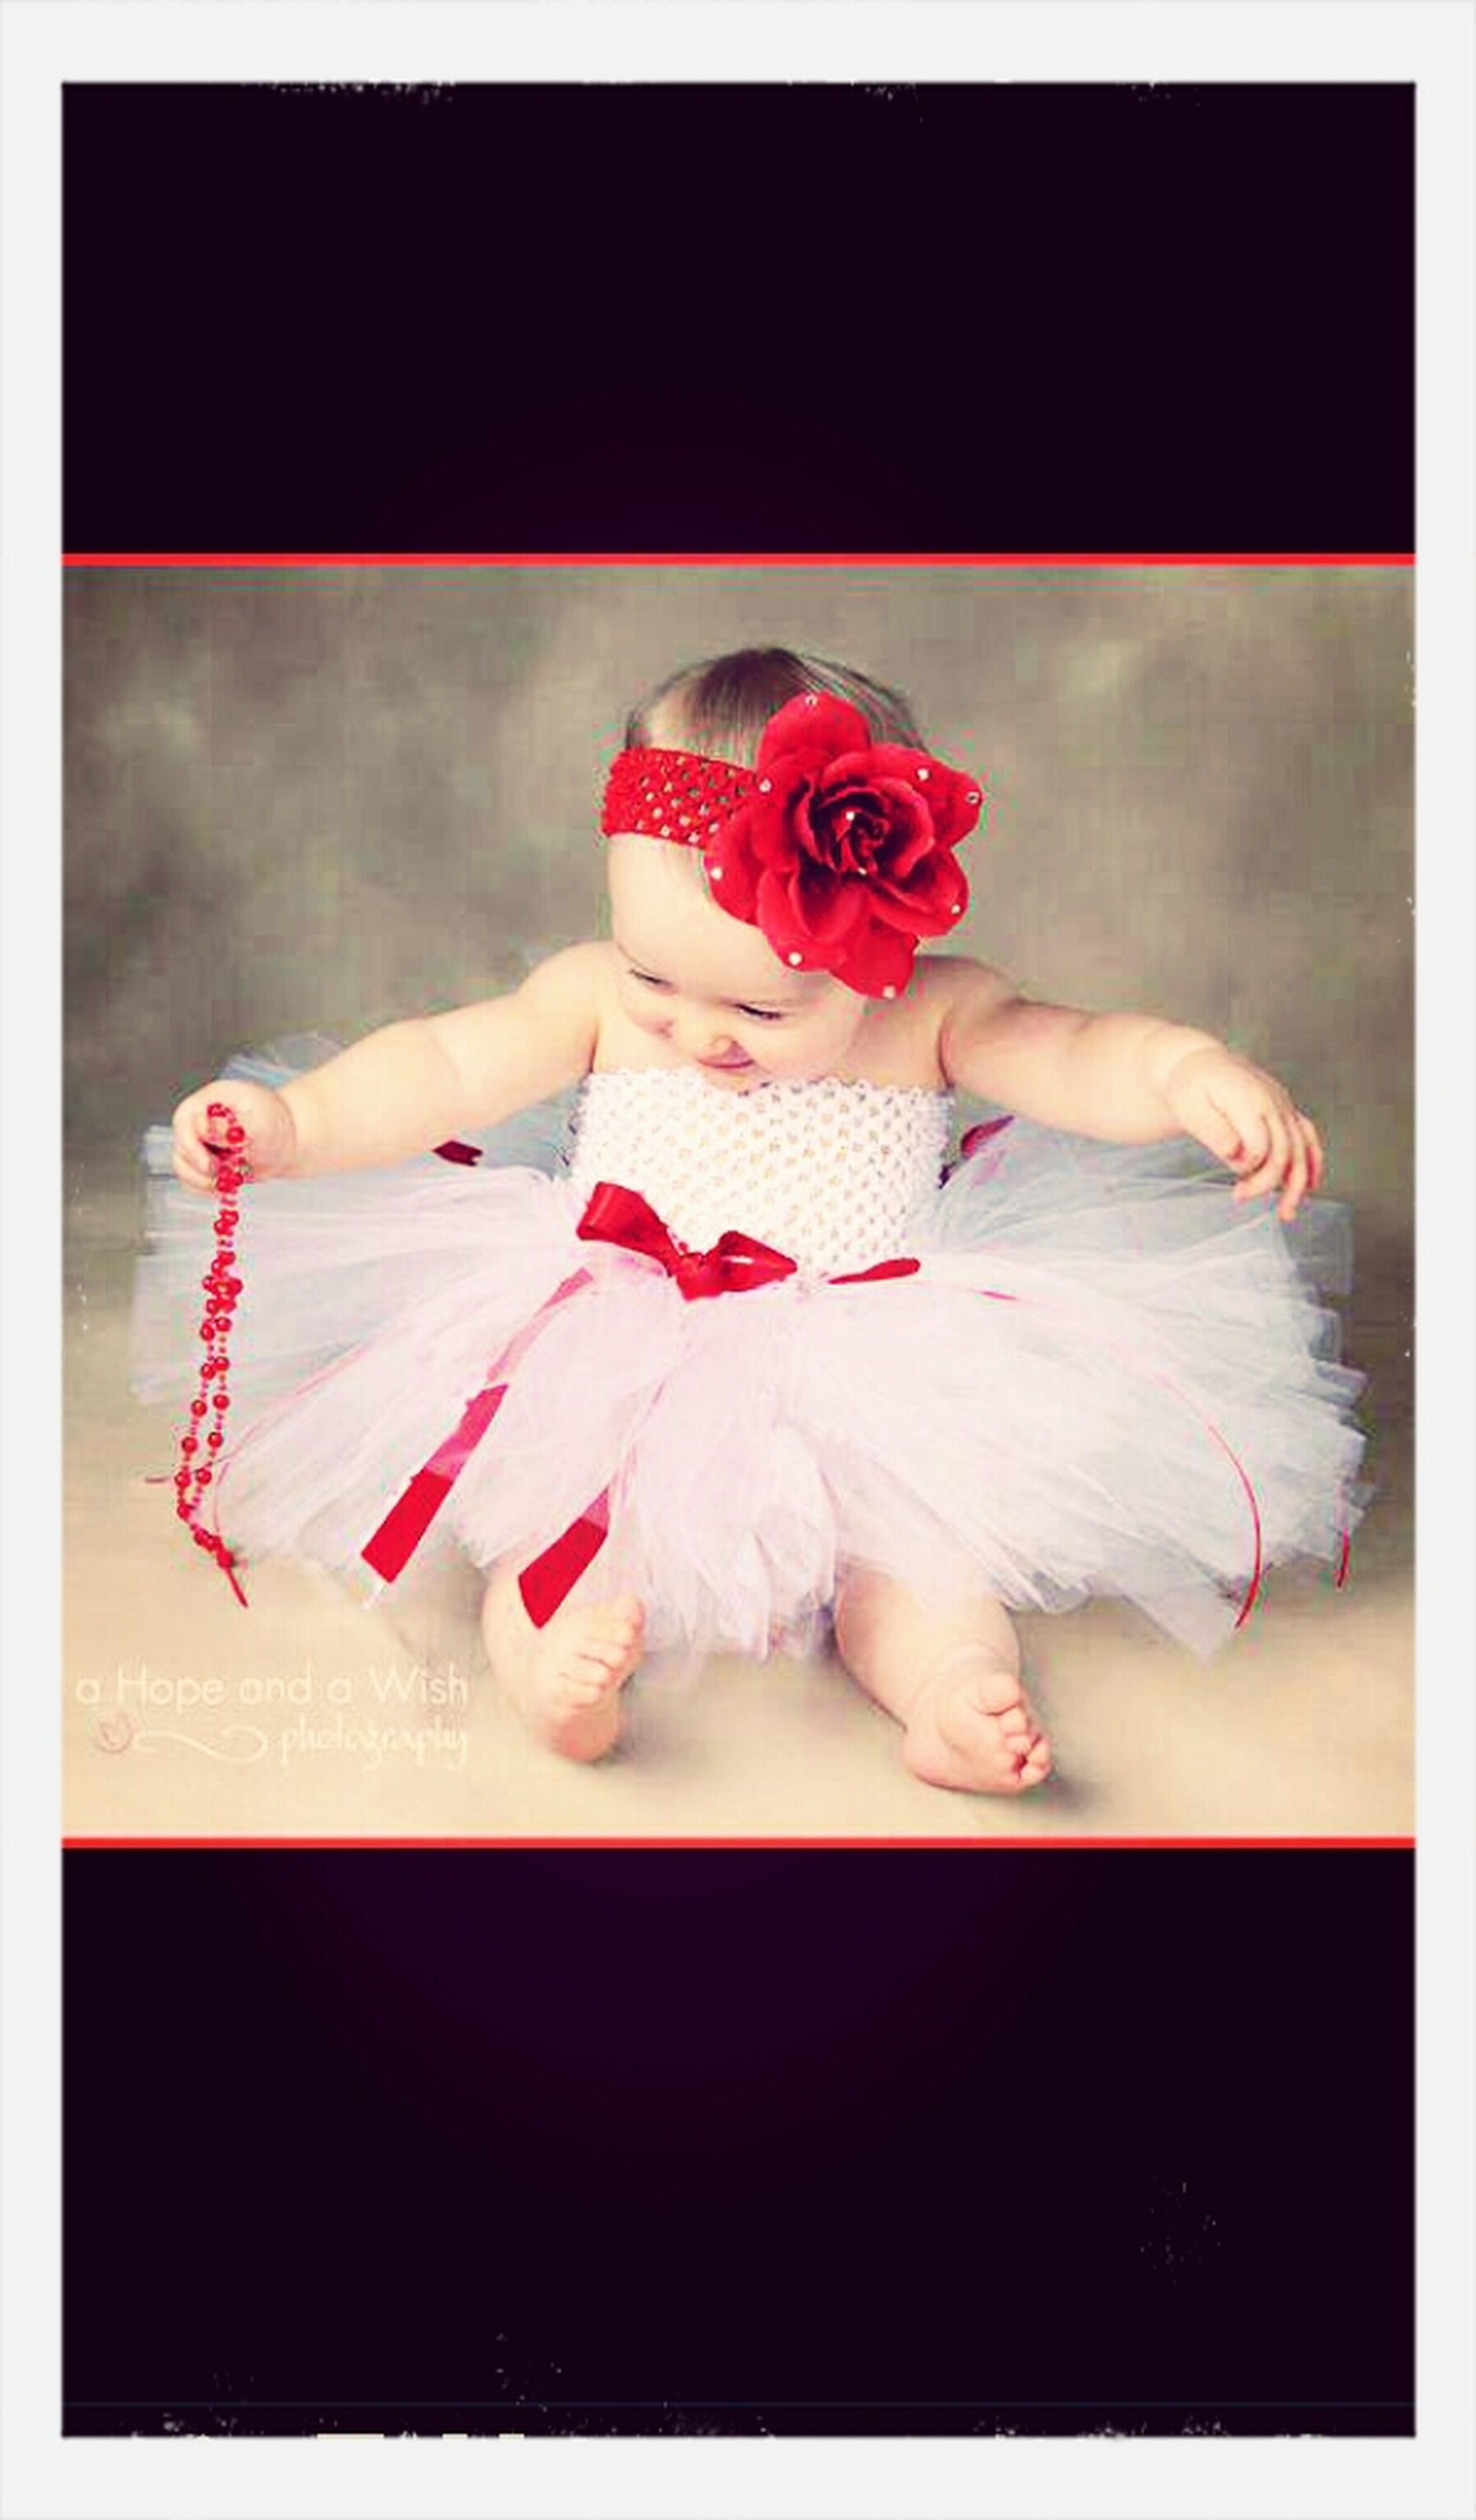 transfer print, auto post production filter, indoors, animal representation, pink color, childhood, creativity, person, holding, close-up, art, toy, high angle view, red, art and craft, lifestyles, full length, day